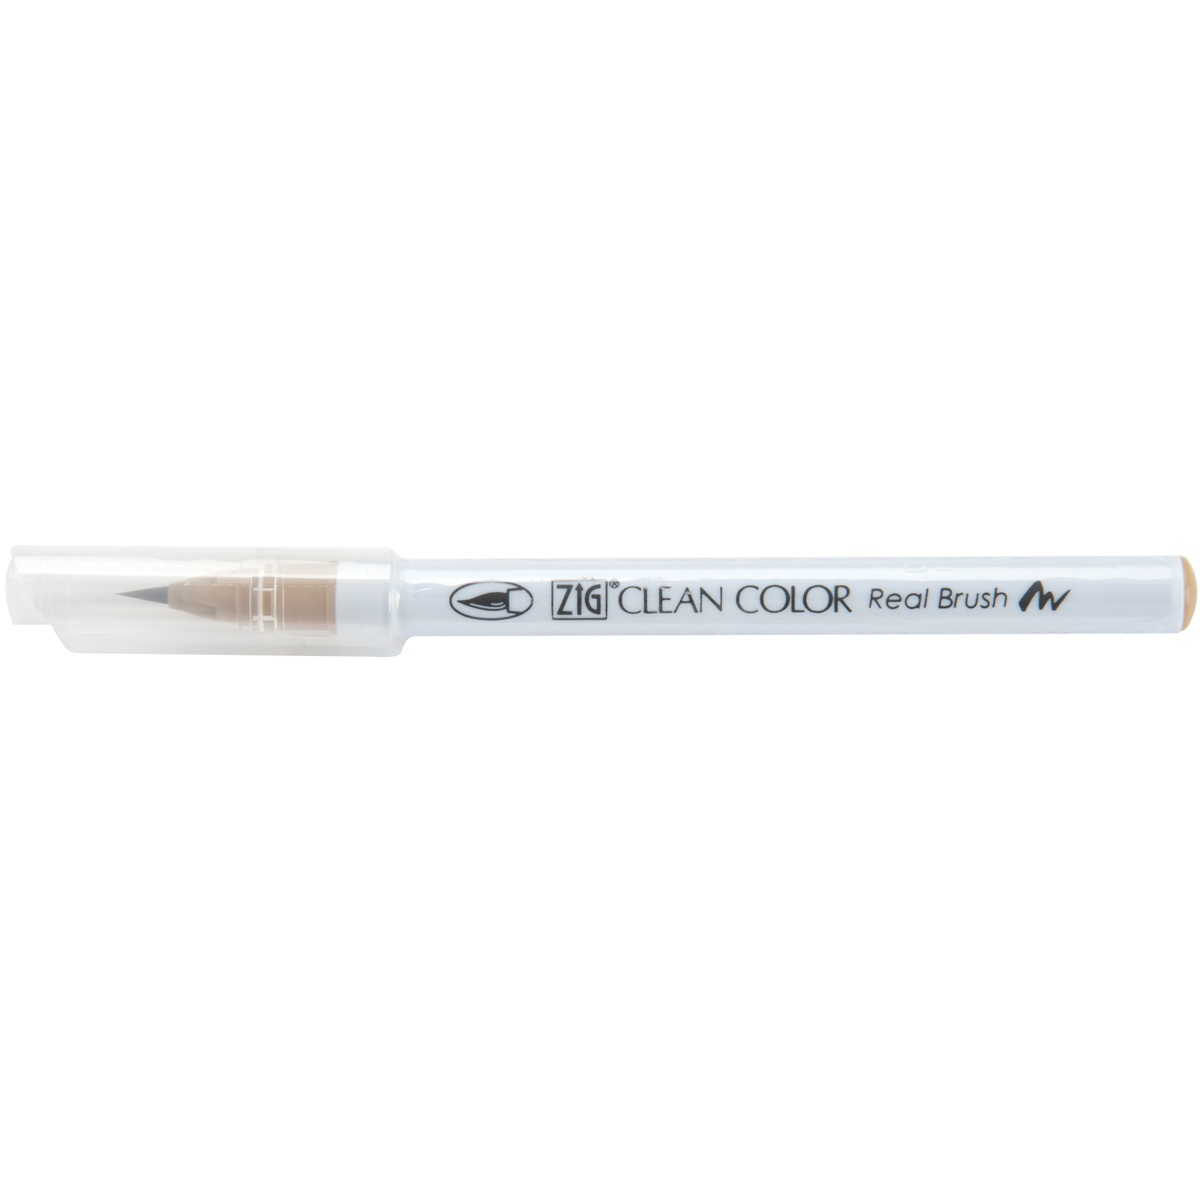 beige clean color real brush